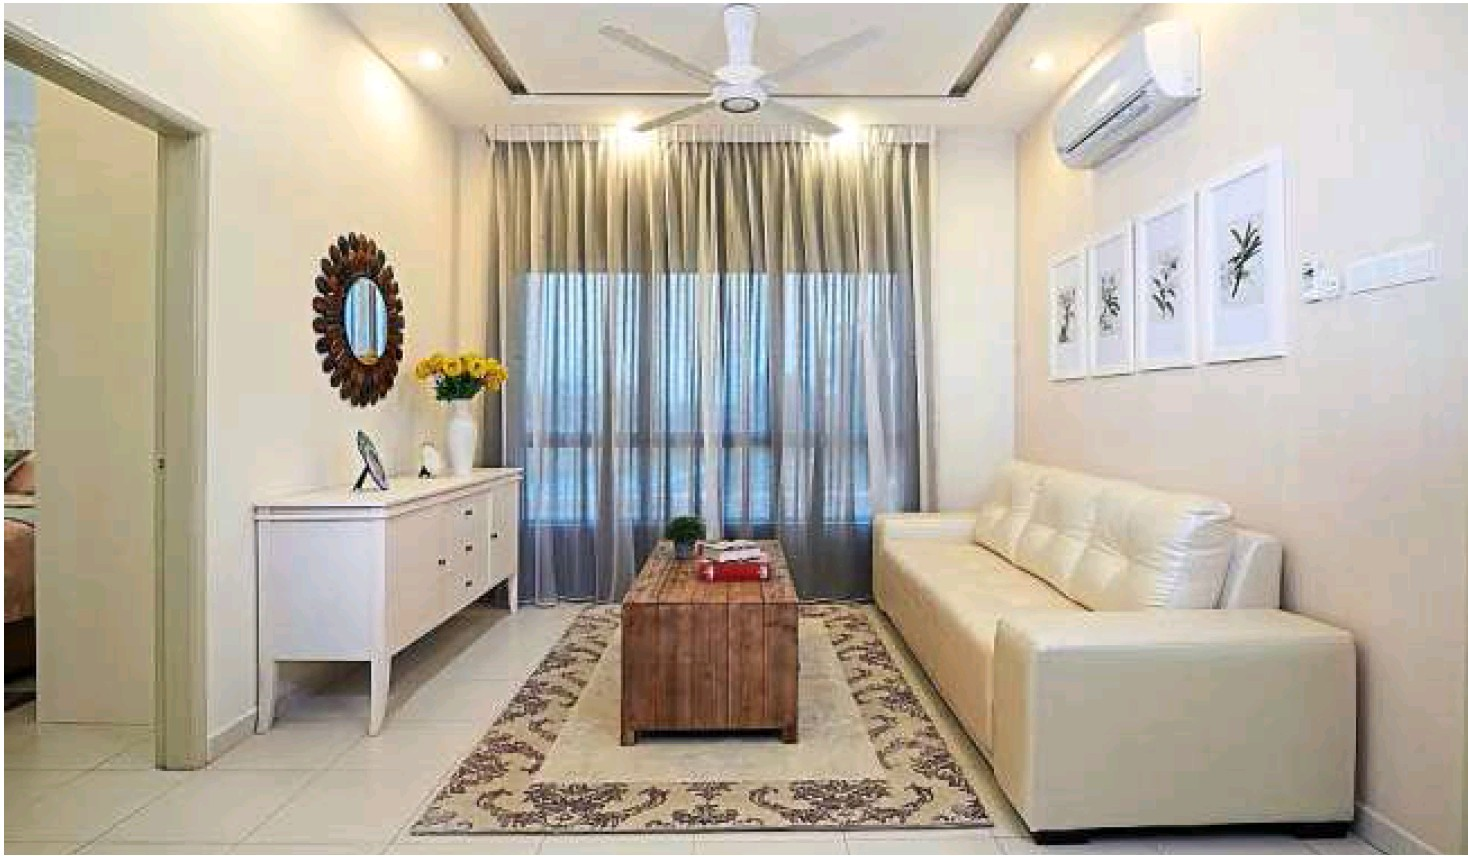 j propves article affordably priced dream homes